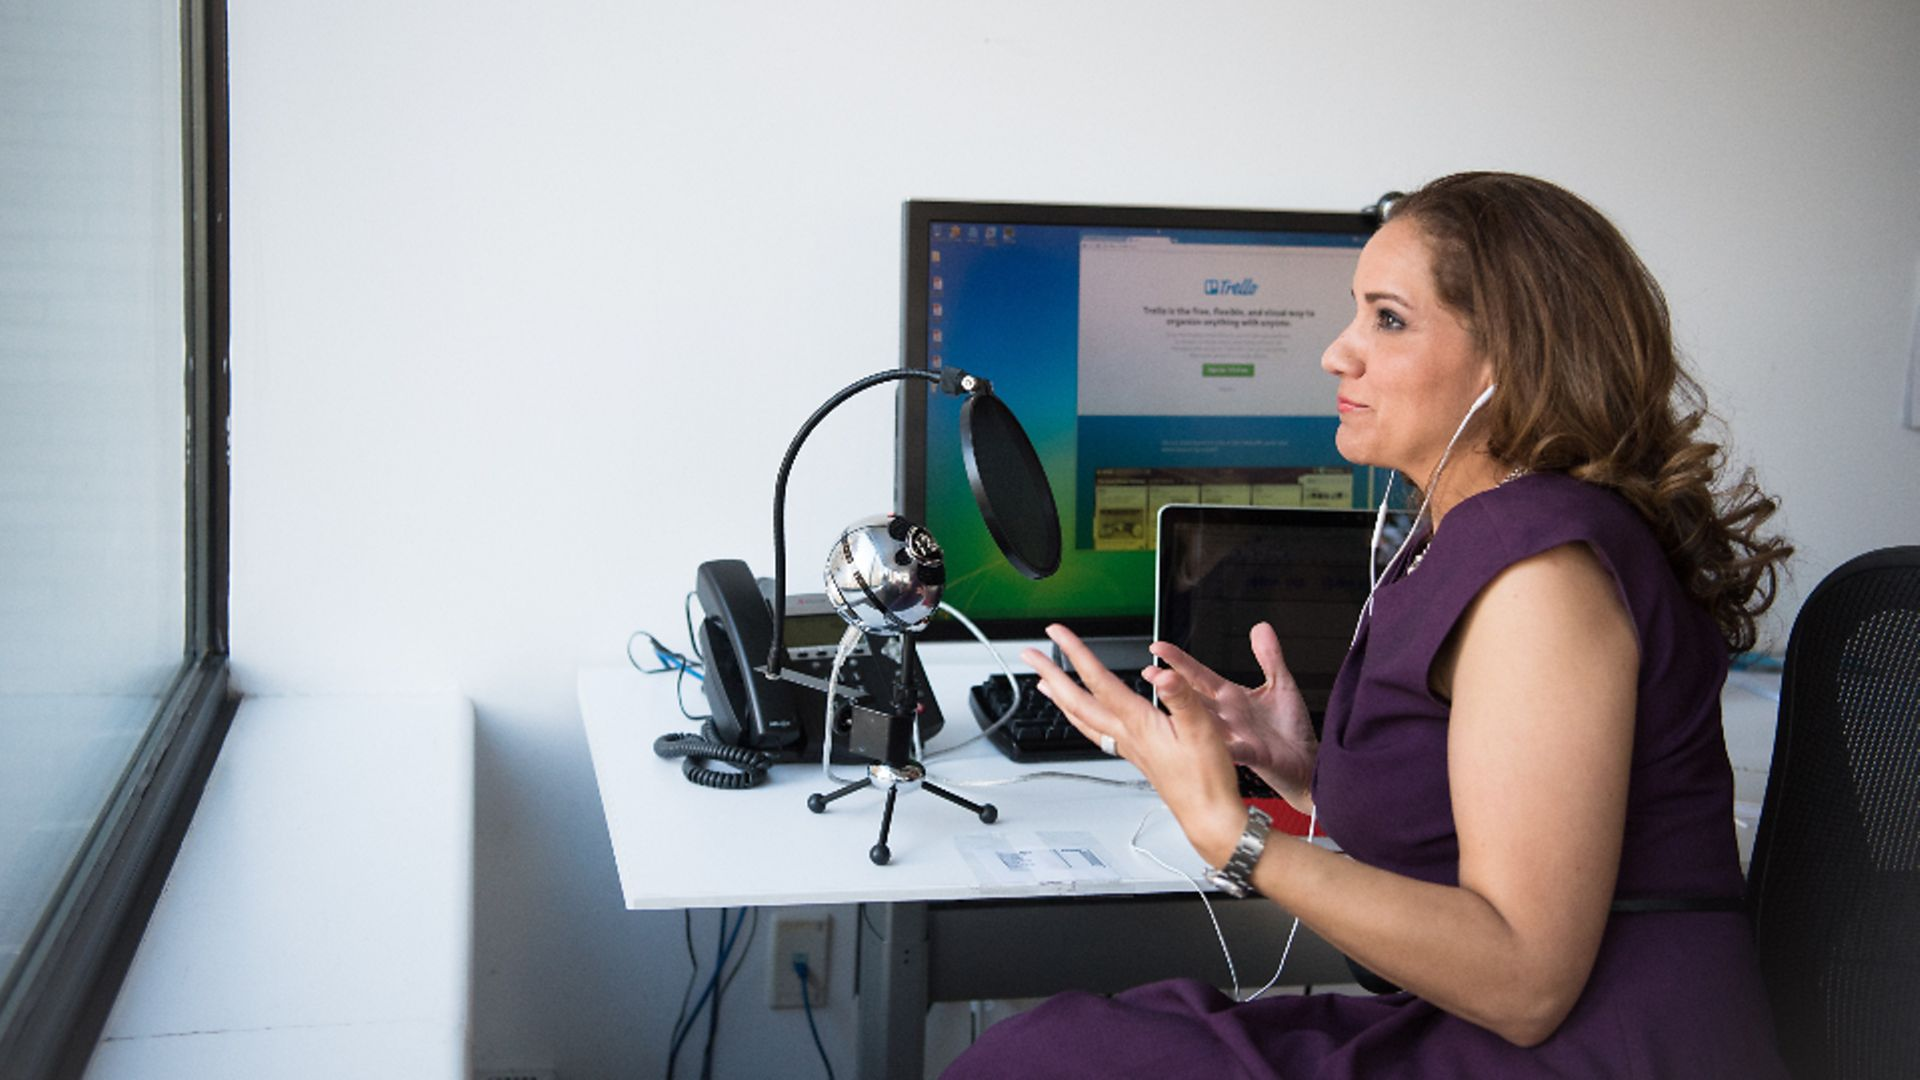 A woman recording a podcast - Credit: Stocksnap